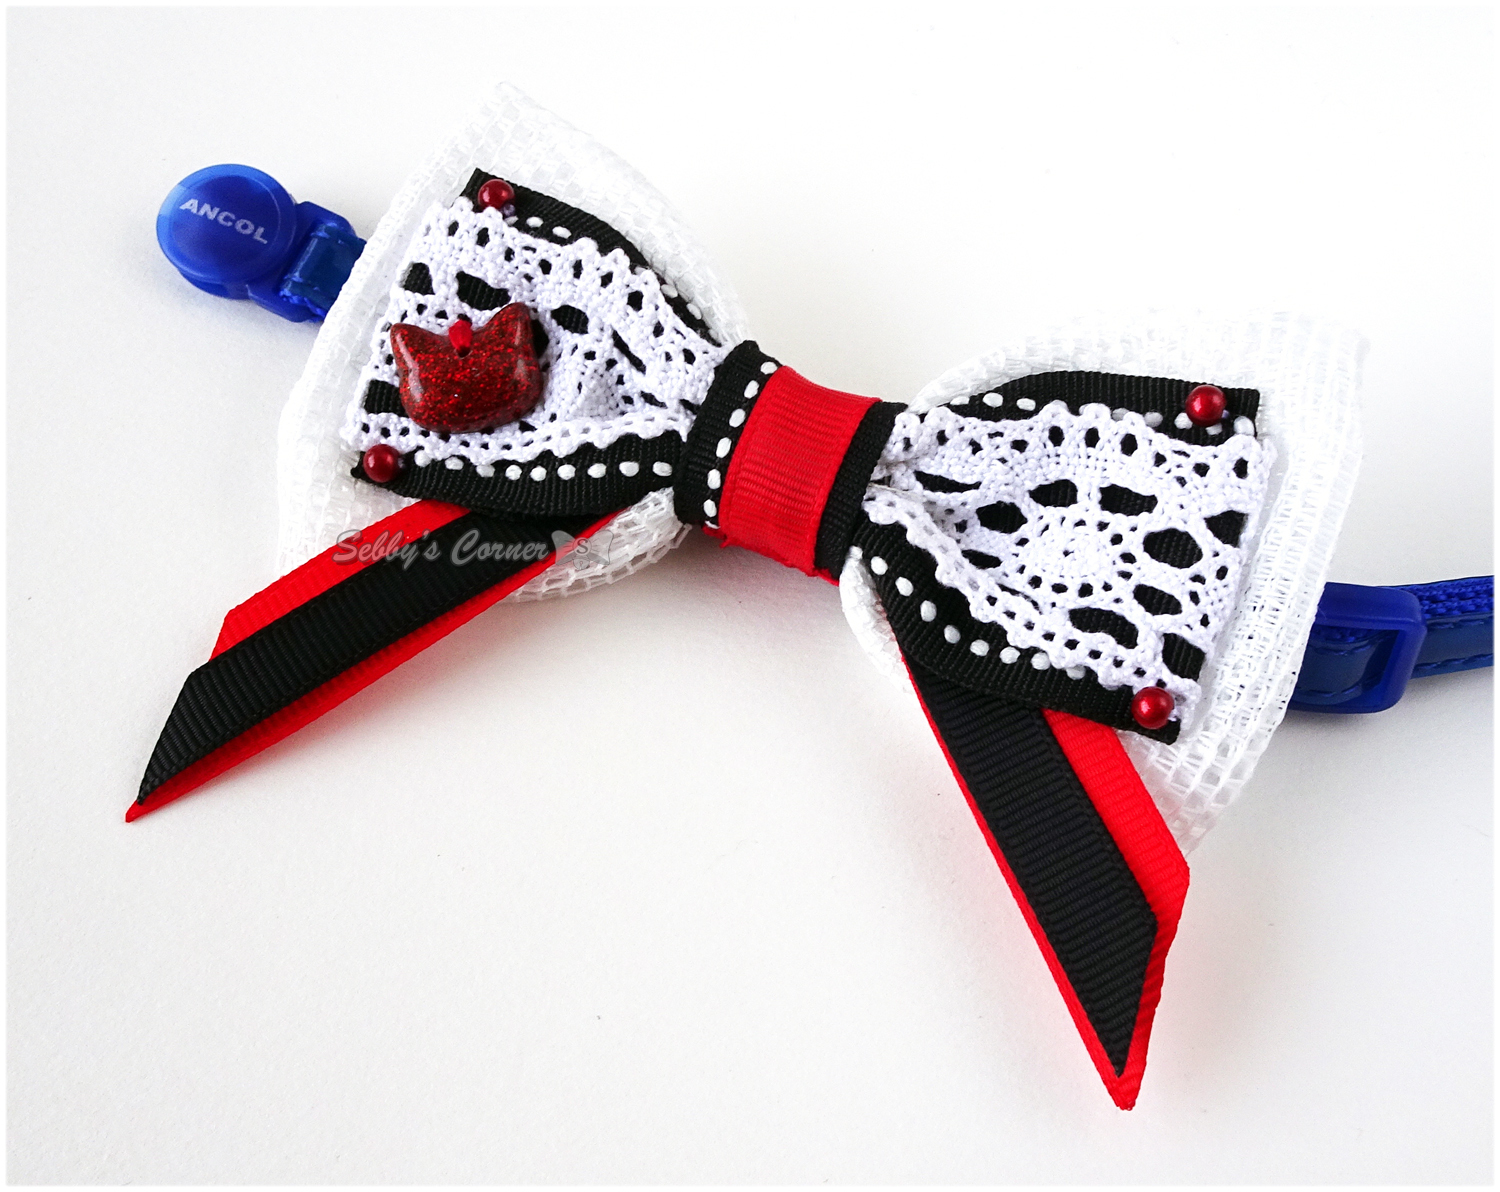 Princess Snow White Handmade Bow Tie for Cats, Black, White, Red, Lace, Winter